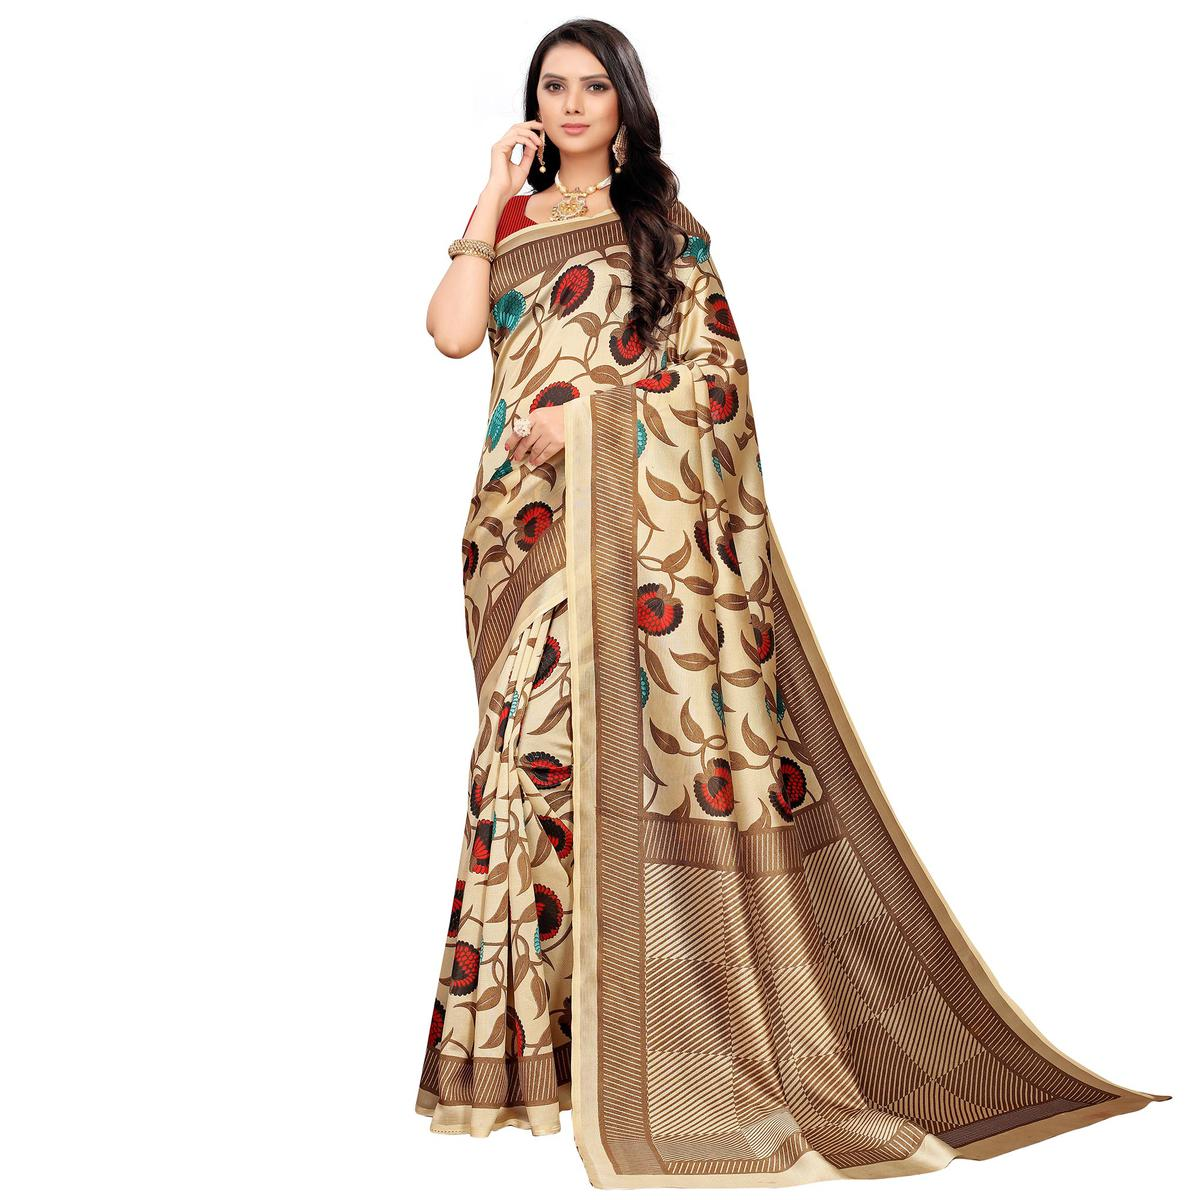 Eye-catching Beige-Red Colored Casual Printed Mysore Silk Saree